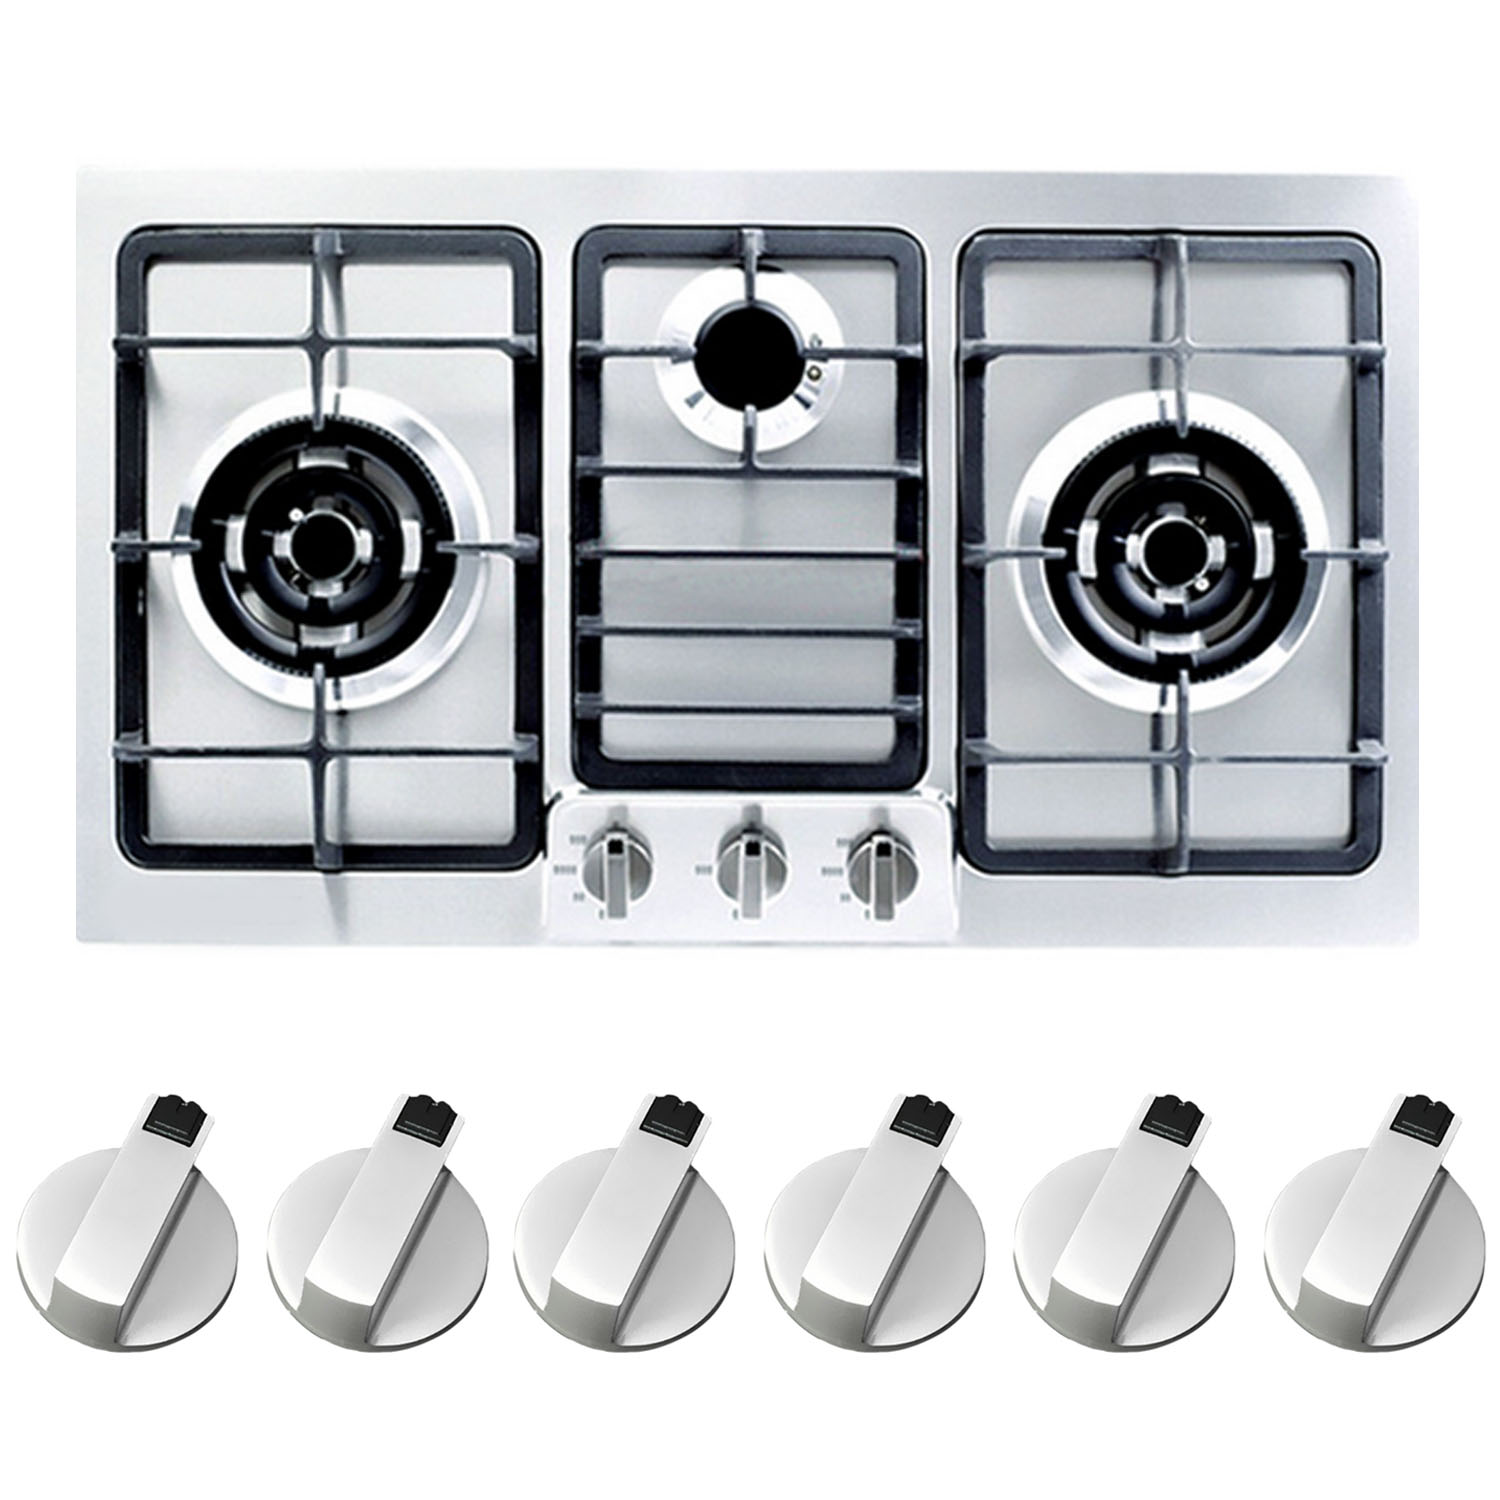 4 Pieces Cooker Control Knobs Metal Gas Stove Knob For Ovens Cookers And Hobs